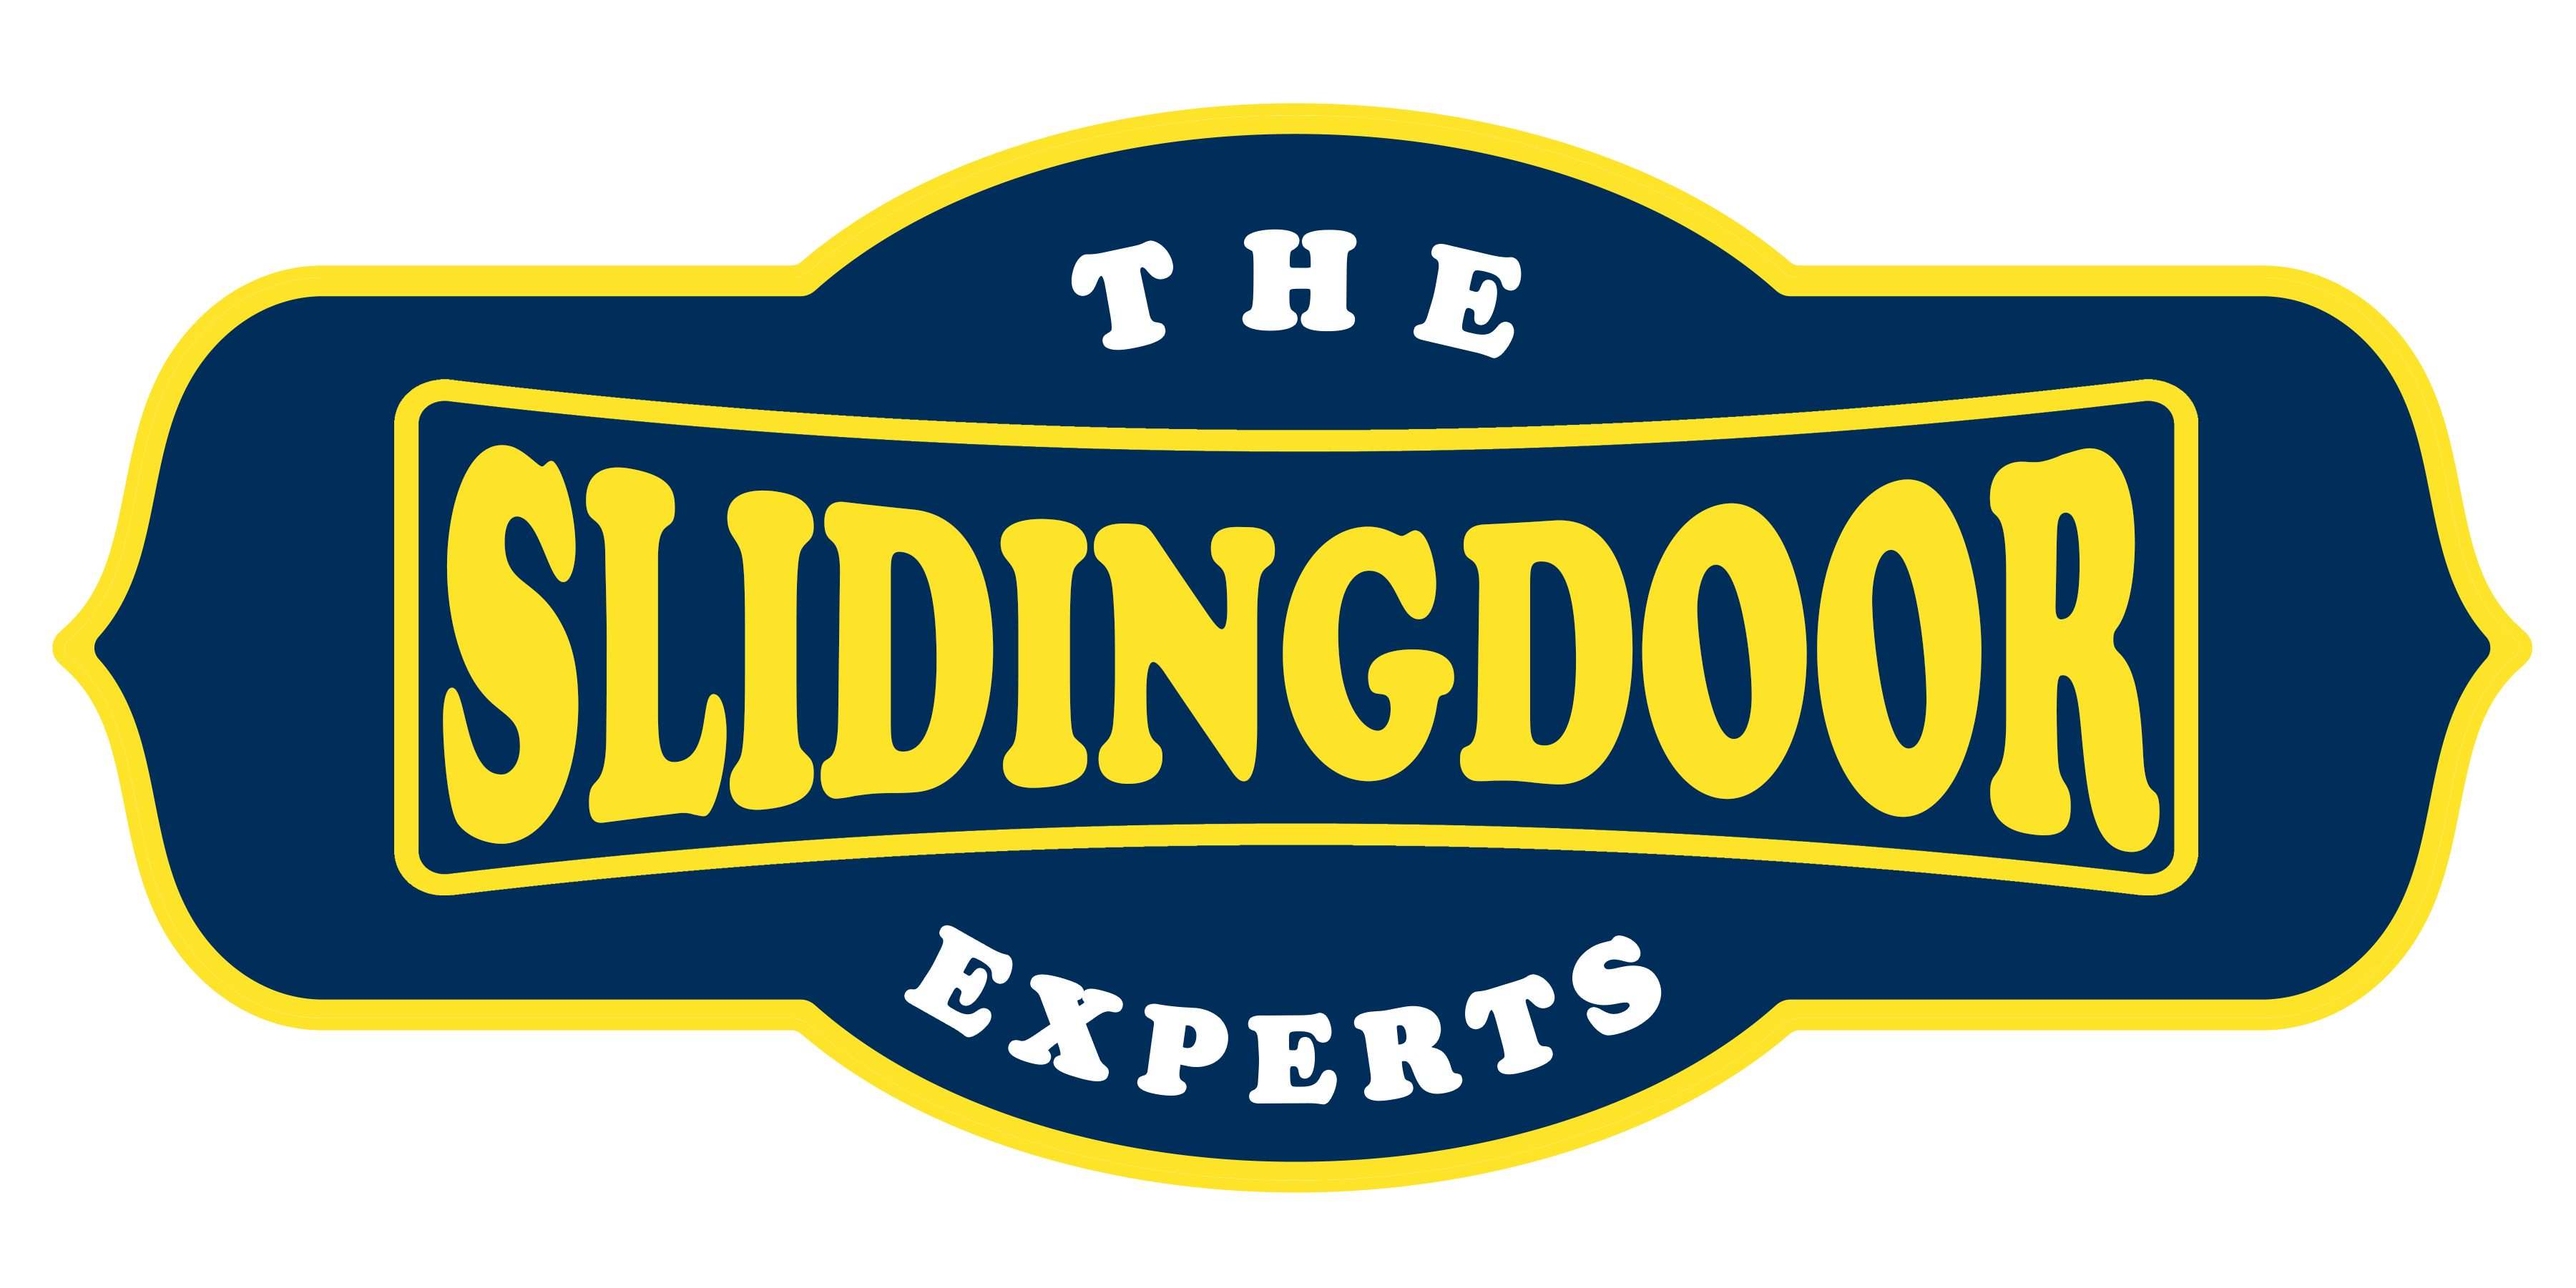 The Sliding Door Experts